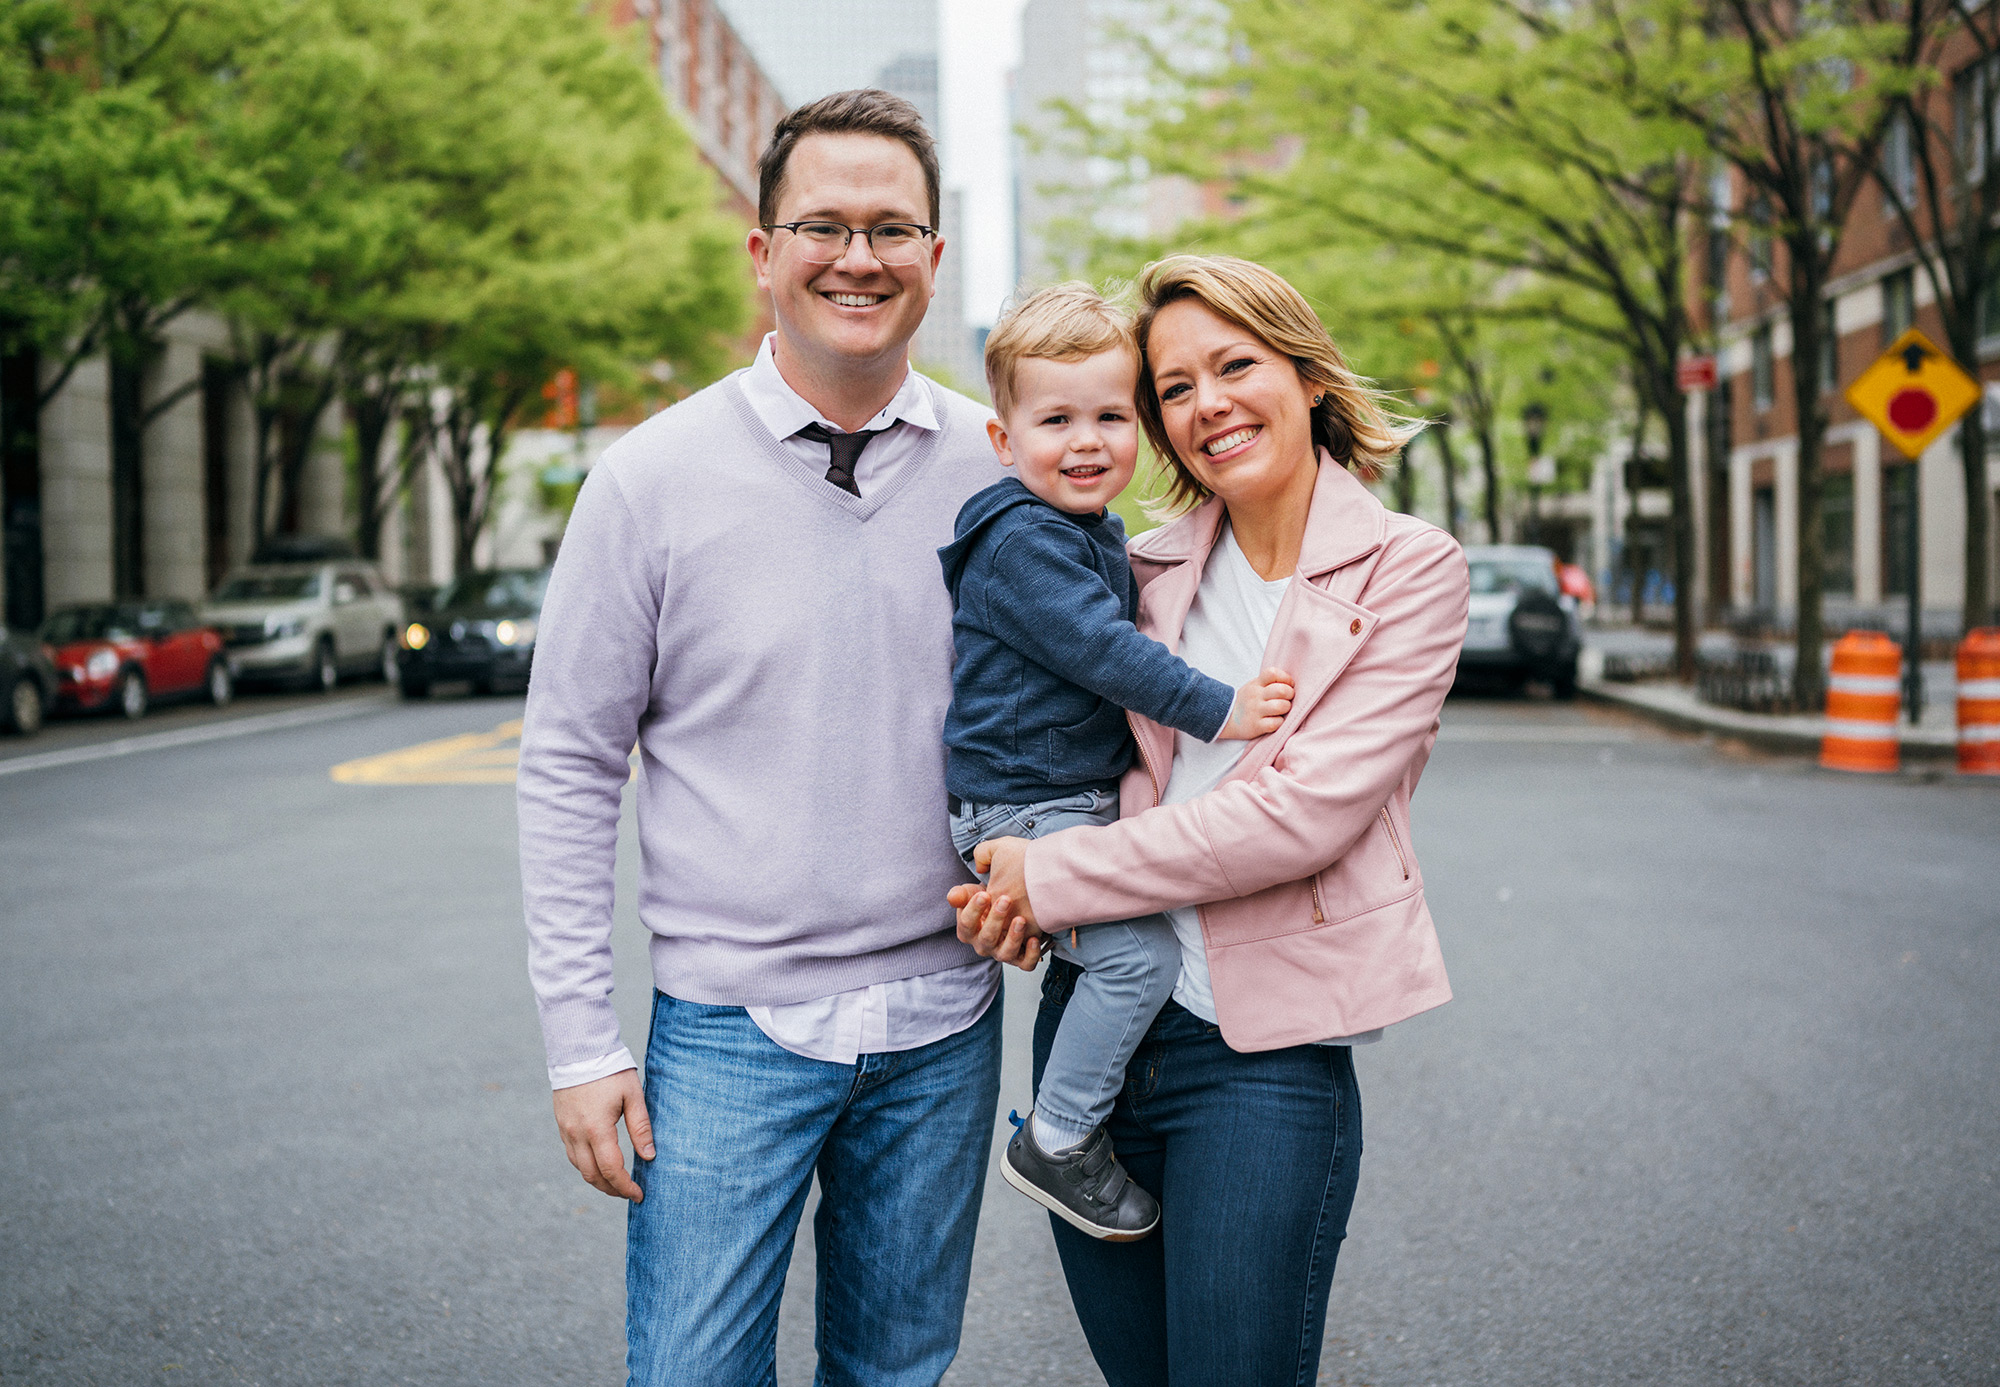 Dylan dreyer, Brian and son calvin